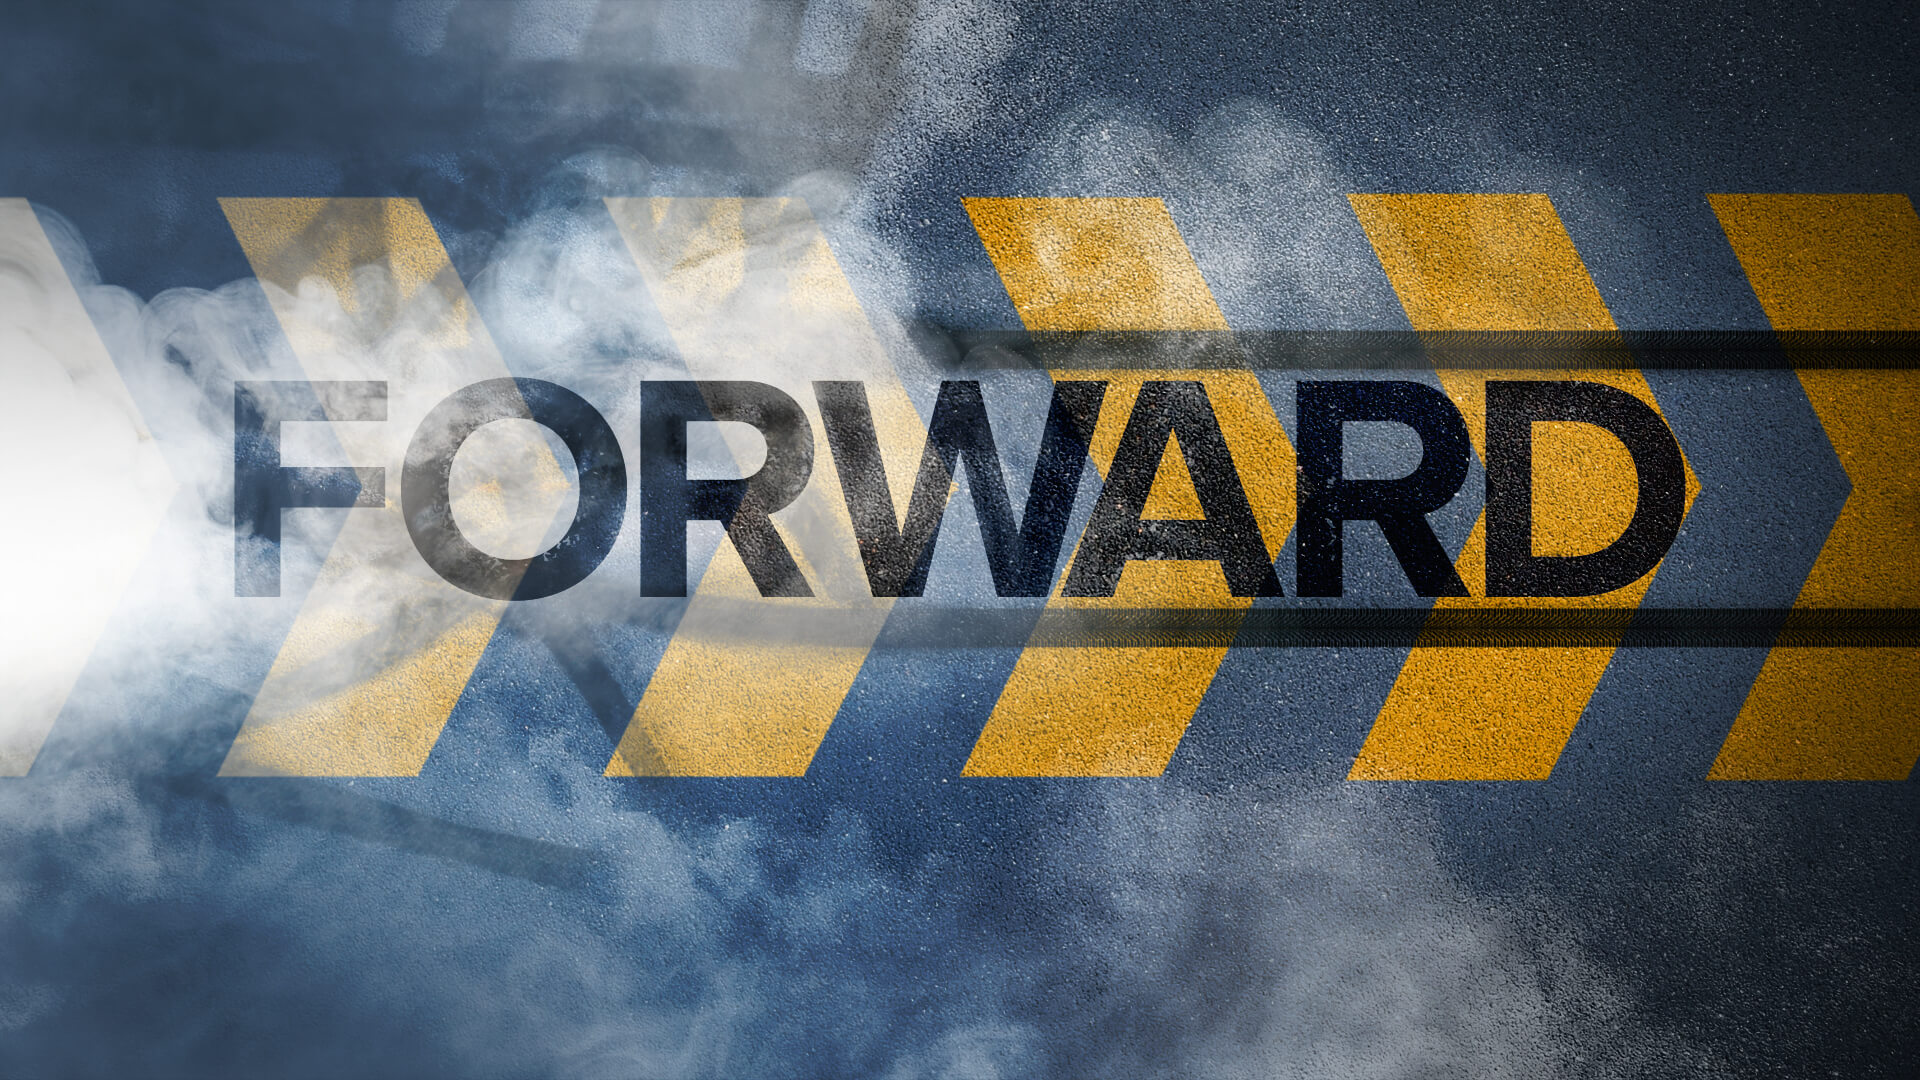 Moving Forward Toward Your Purpose (Dennis Rouse) | Victory World Church